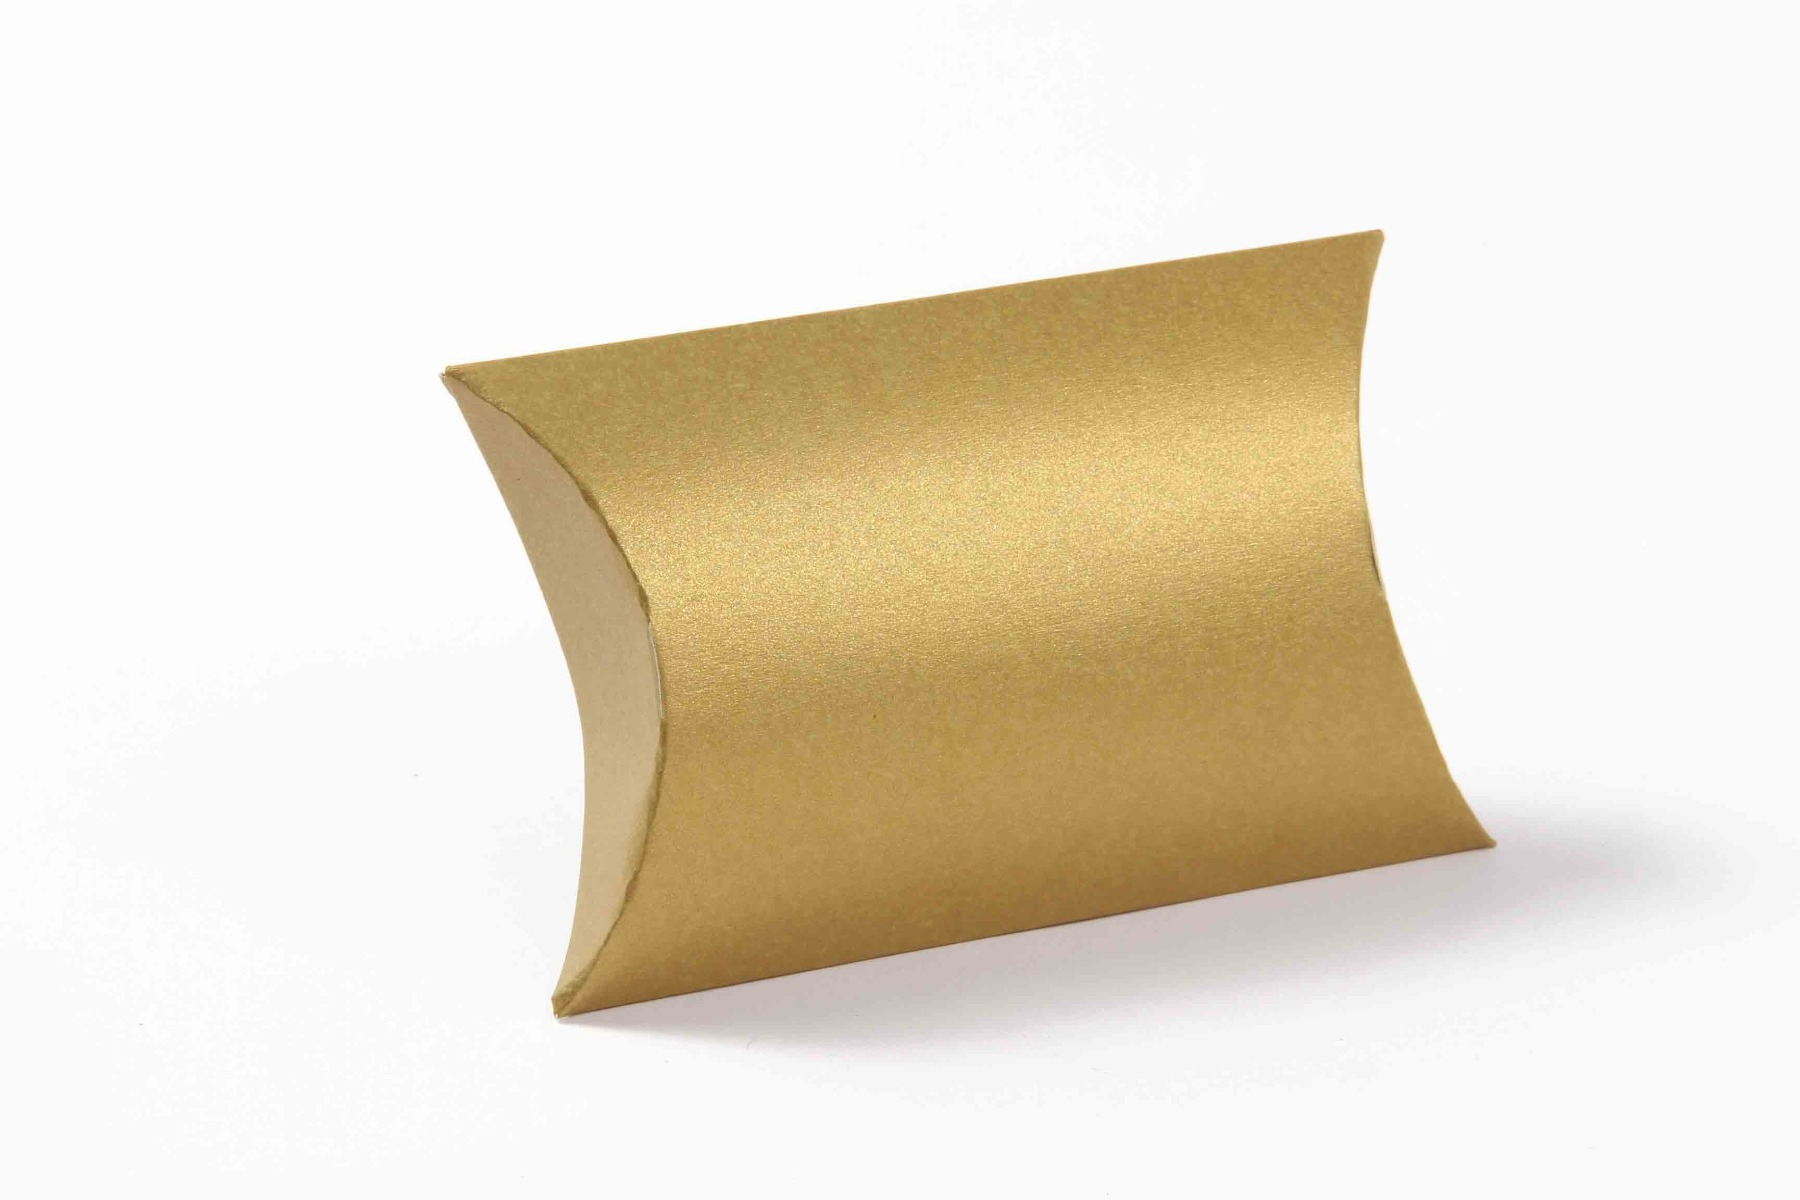 Pillow Favor Box No 9 - Golden-8683